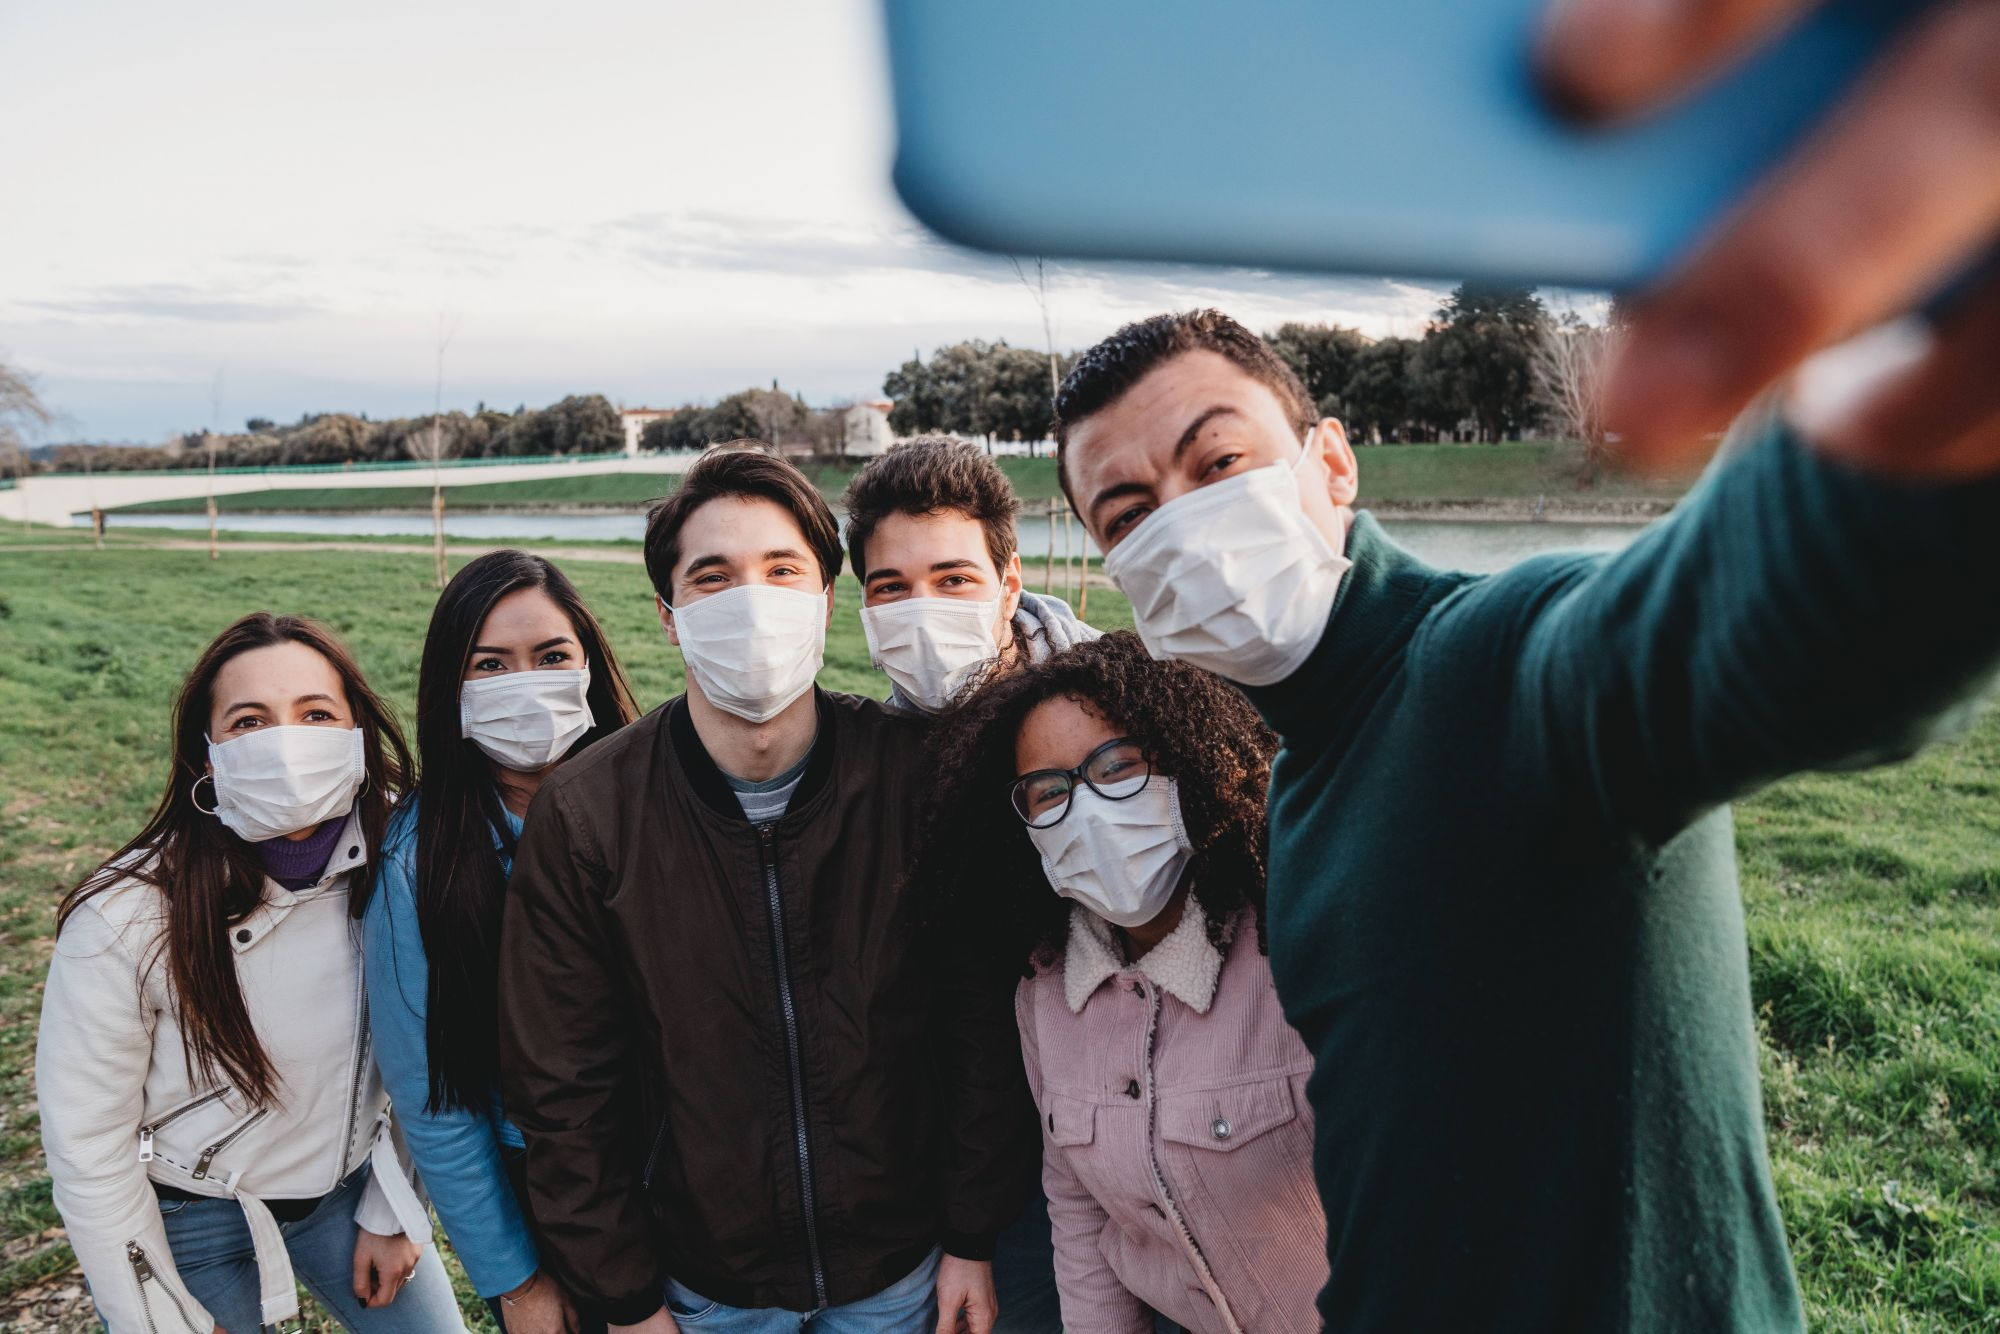 Group of six friends taking a selfie together while they are wearing protecting masks. Multi ethnic group of people wearing pollution masks to protect themselves from viruses.